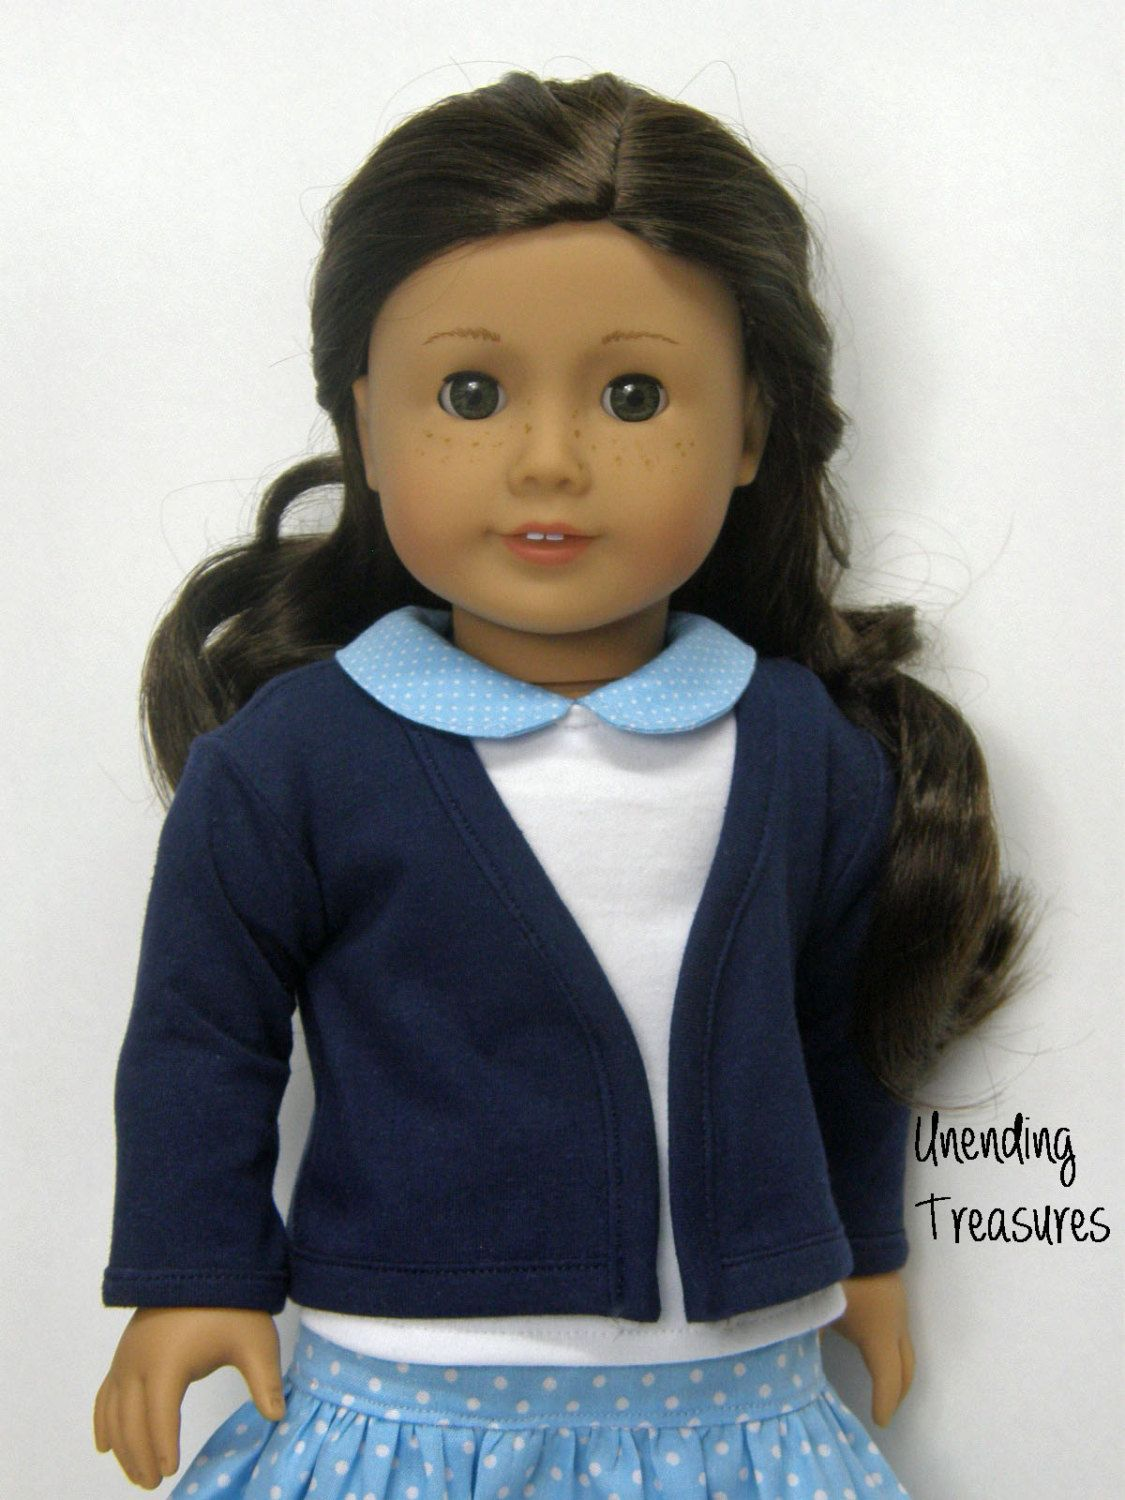 navy cardigan sweater, 18 inch doll clothes, AG doll clothes girl, doll clothes AG doll cardigan sweater by Unendingtreasures on Etsy